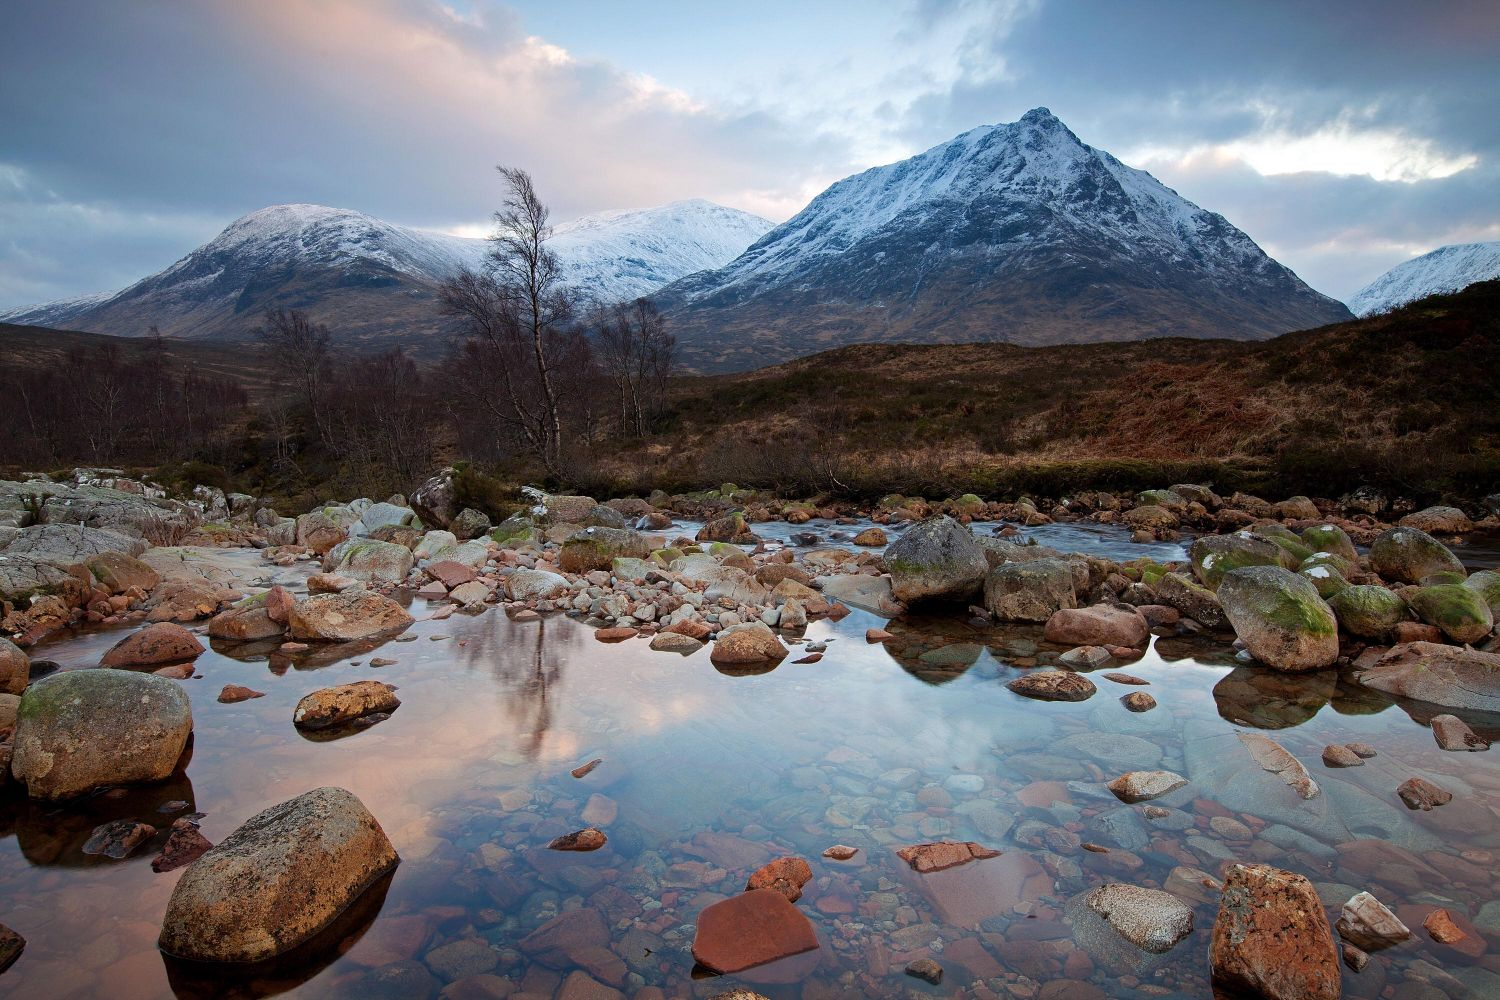 Meall a'Bhuiridh and Creise at Glencoe rising above the head of Glen Etive.